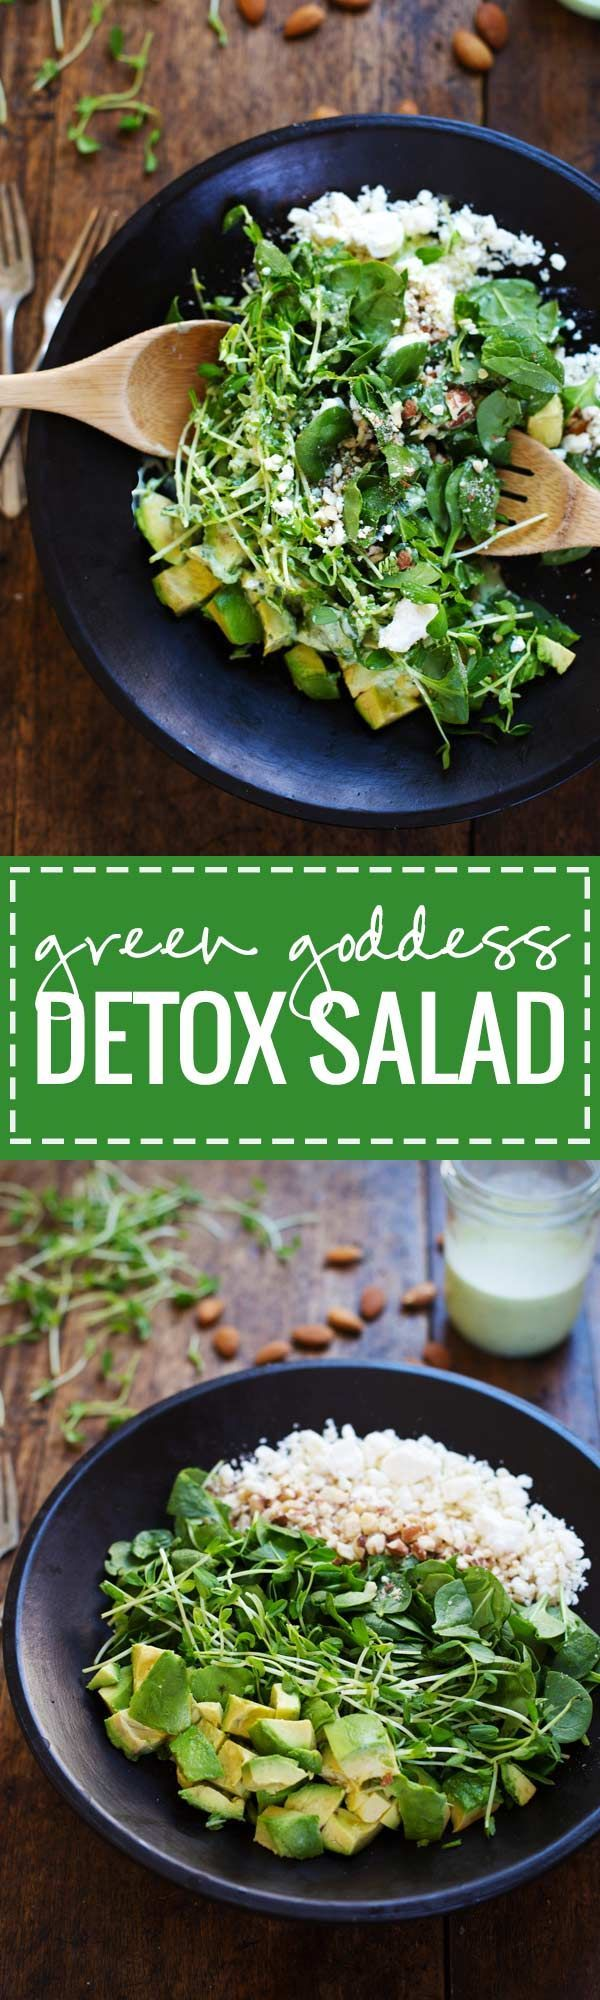 Green Goddess Salad Green Goddess Detox Salad - avocado, almonds, spinach, pea shoots, and healthy homemade Green Goddess dressing. Healthy + yummy. | Chopped  Chopped can have the following meanings: